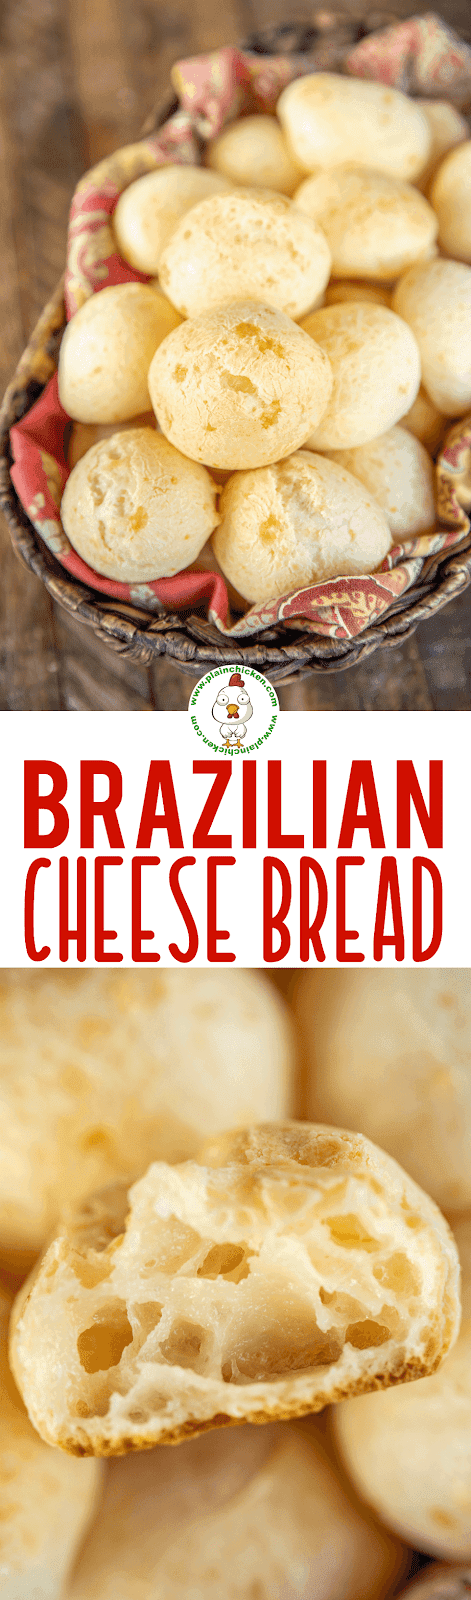 collage of 2 photos of Brazilian cheese bread